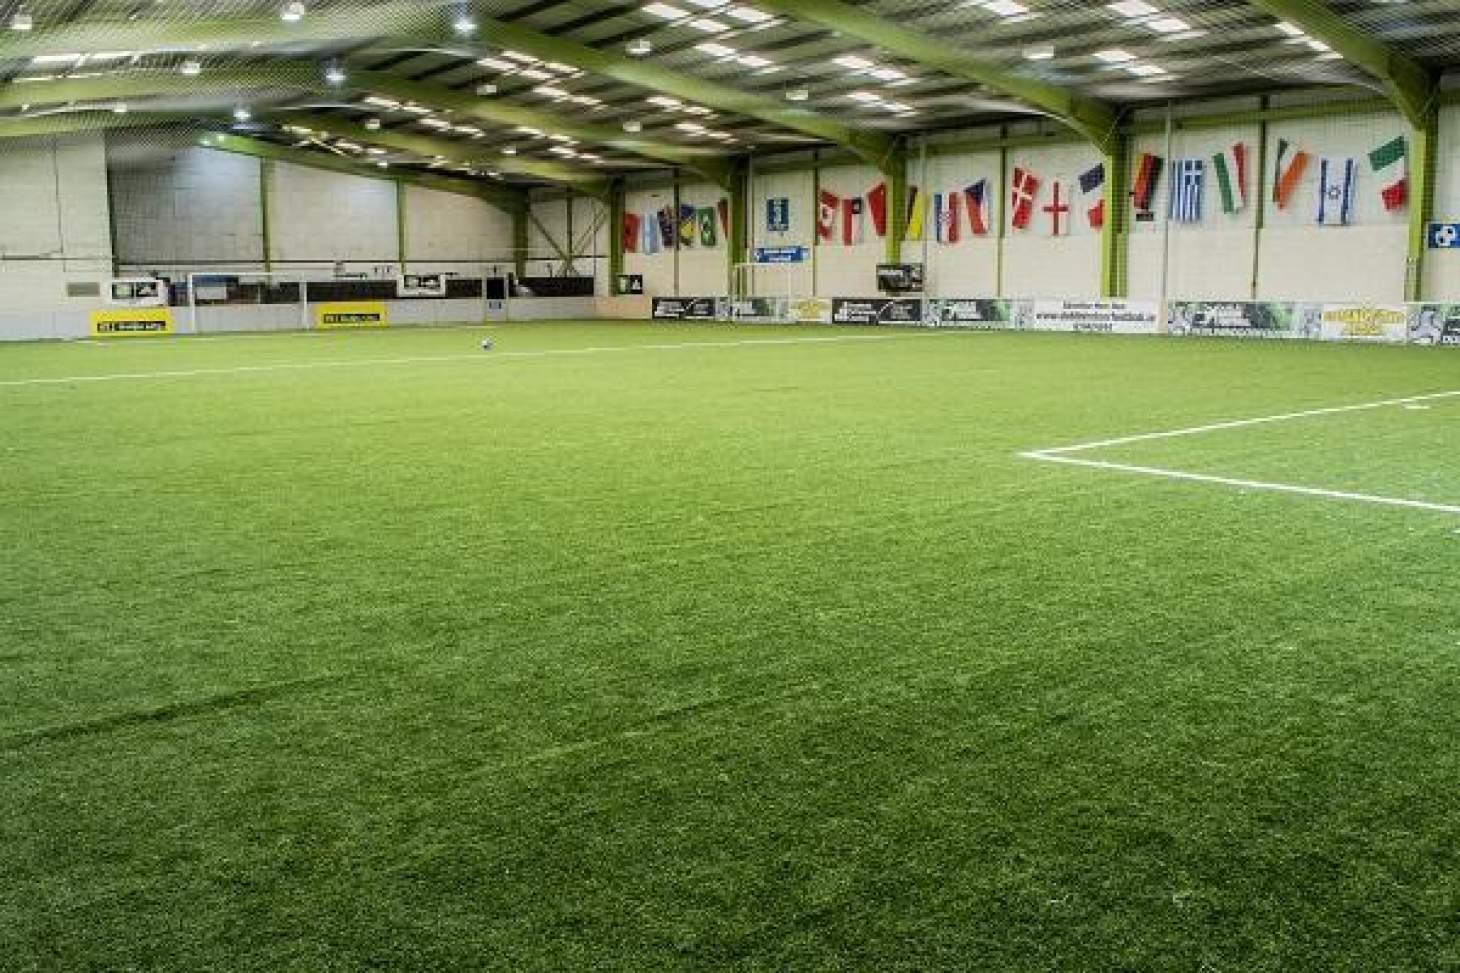 Dublin Indoor Football 9 a side | 3G Astroturf football pitch